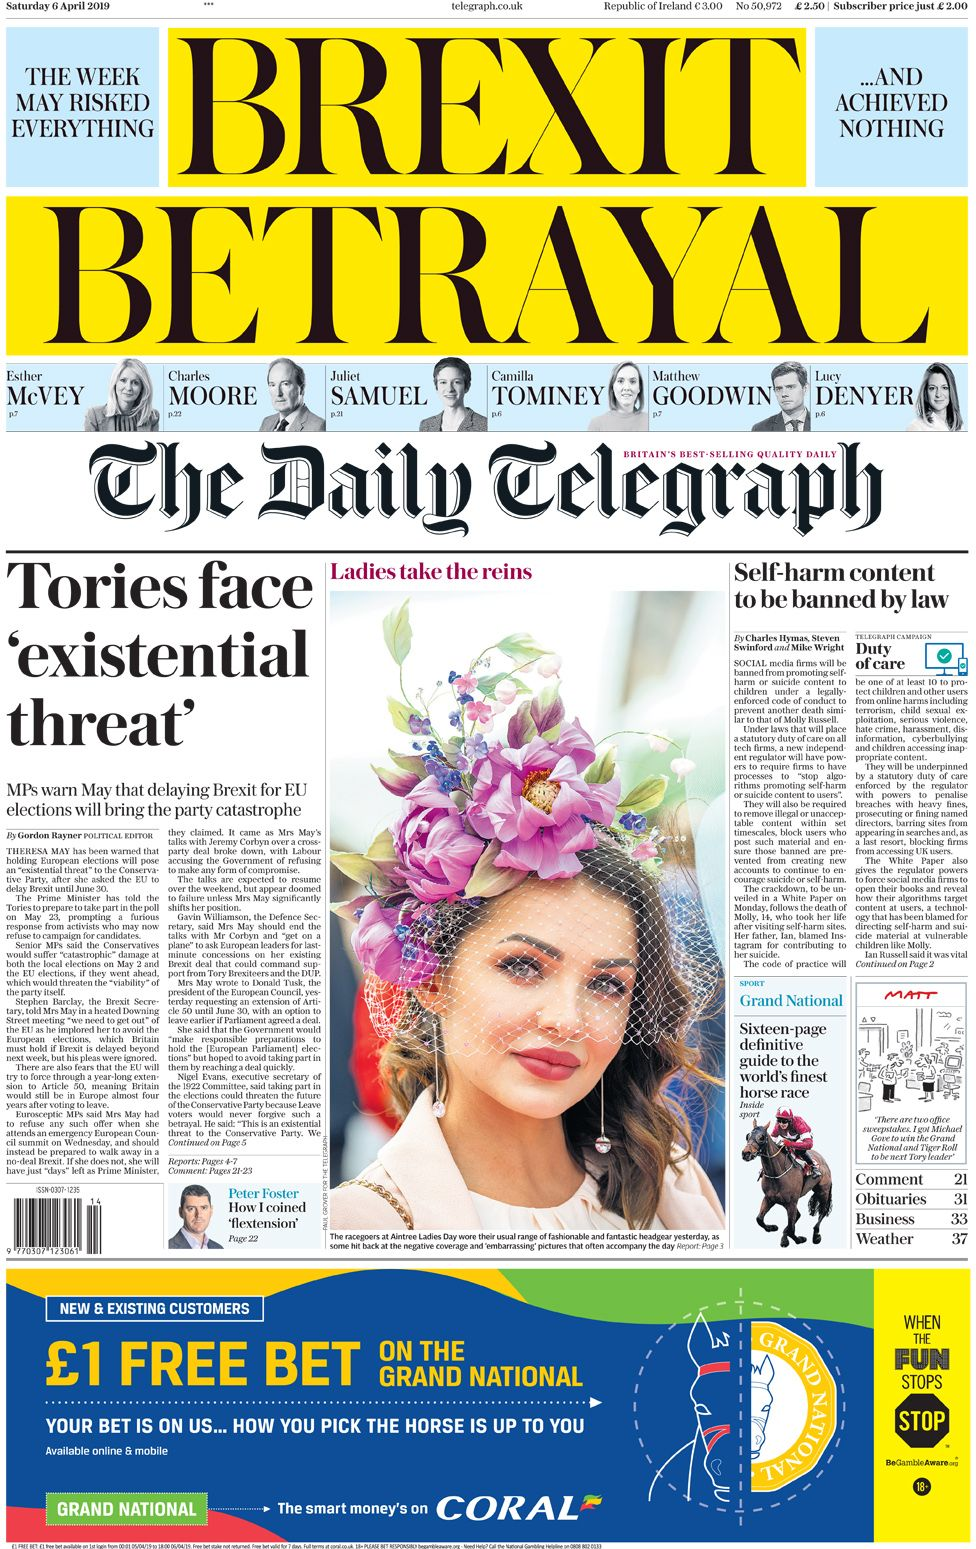 Daily Telegraph front page, 6/4/19